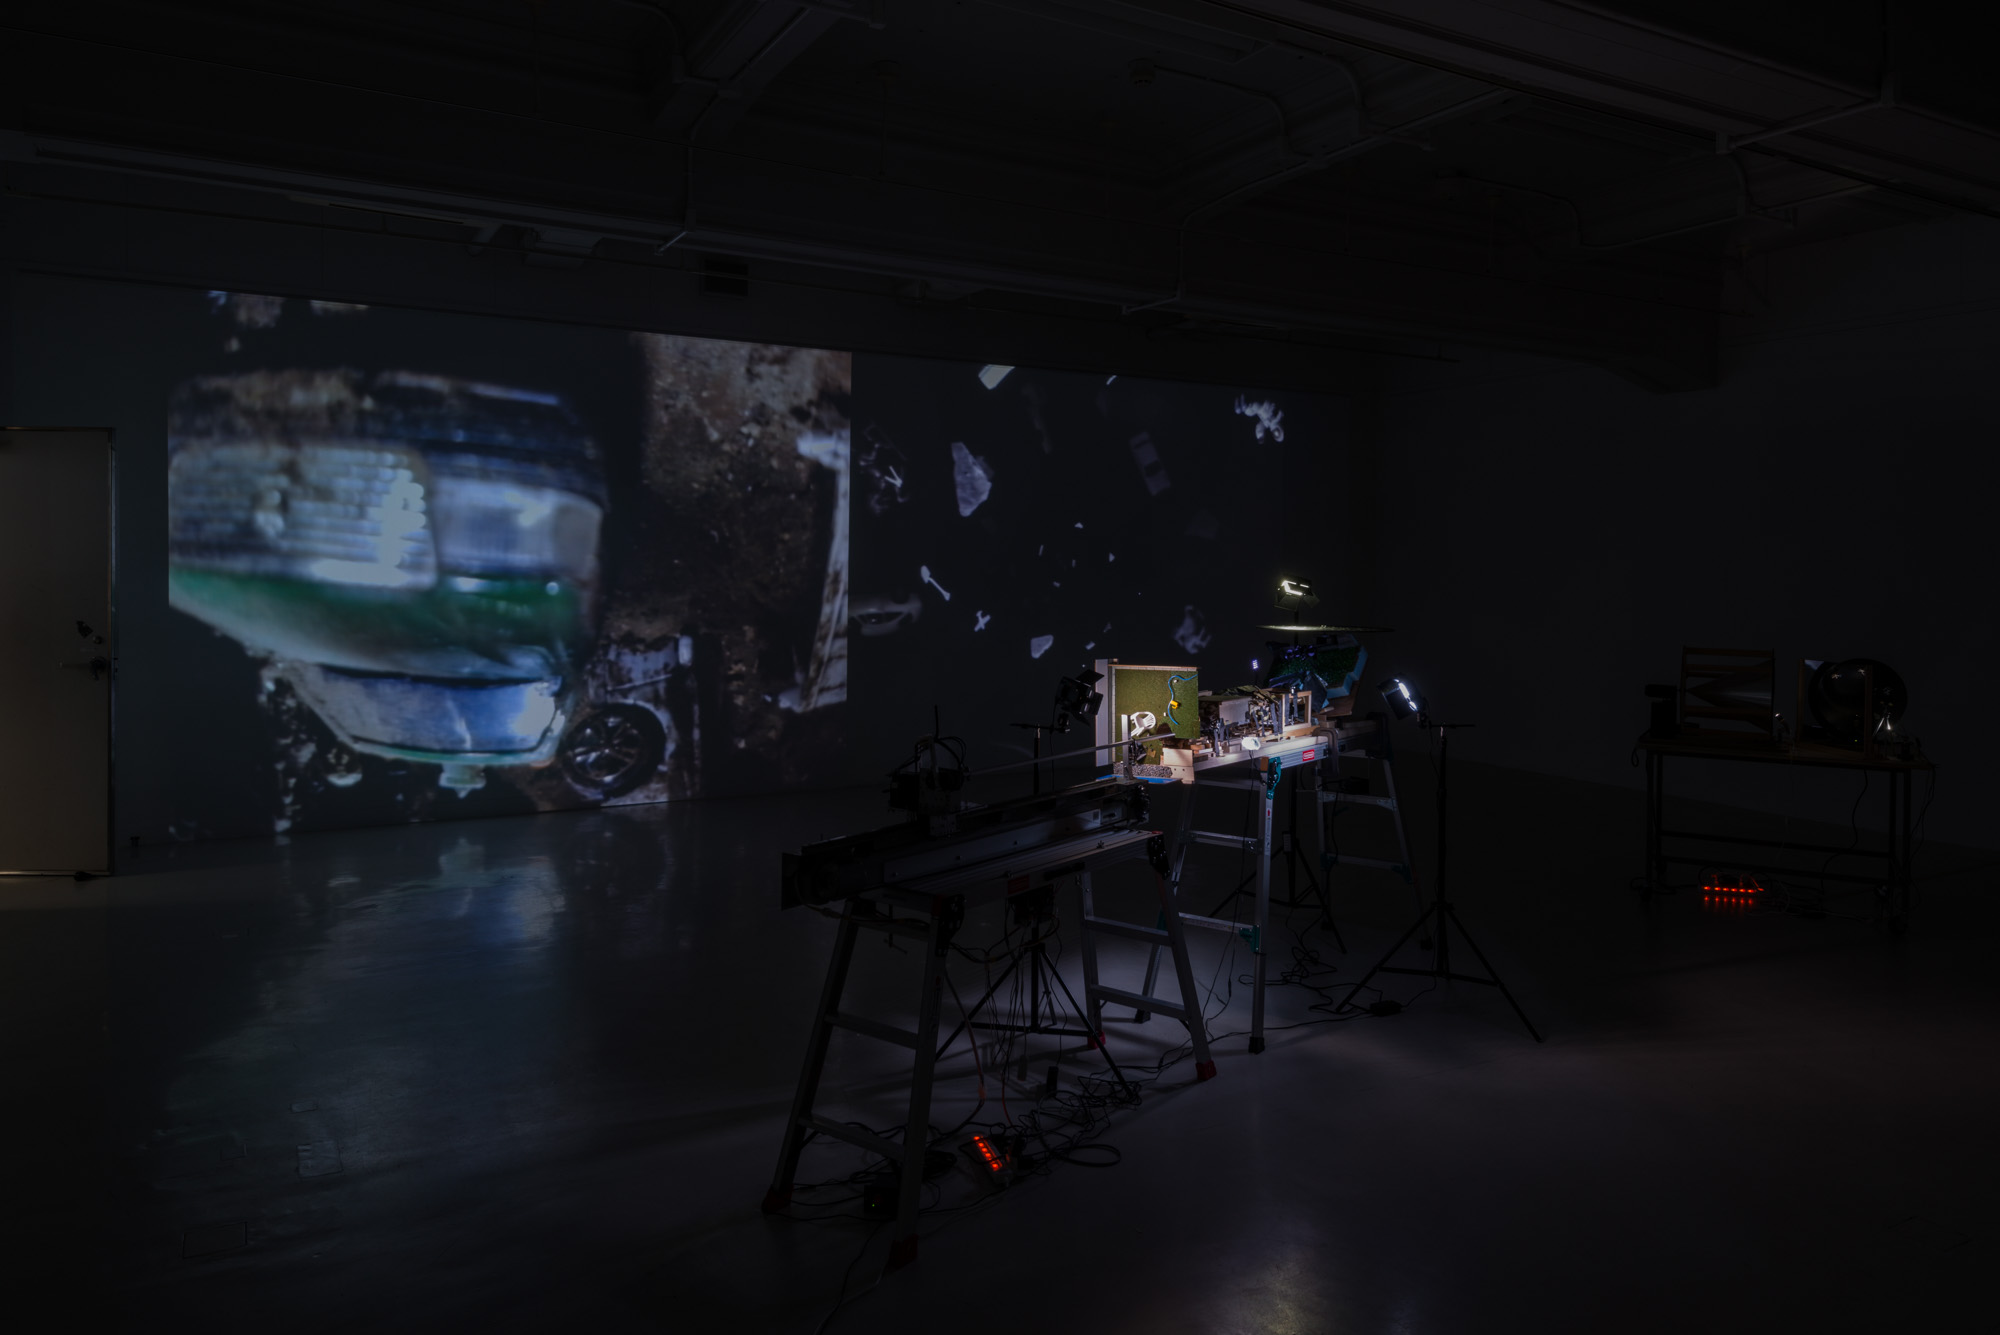 新incubation8『ジオラマとパノラマ ――Diverting Realities』展示風景<br />